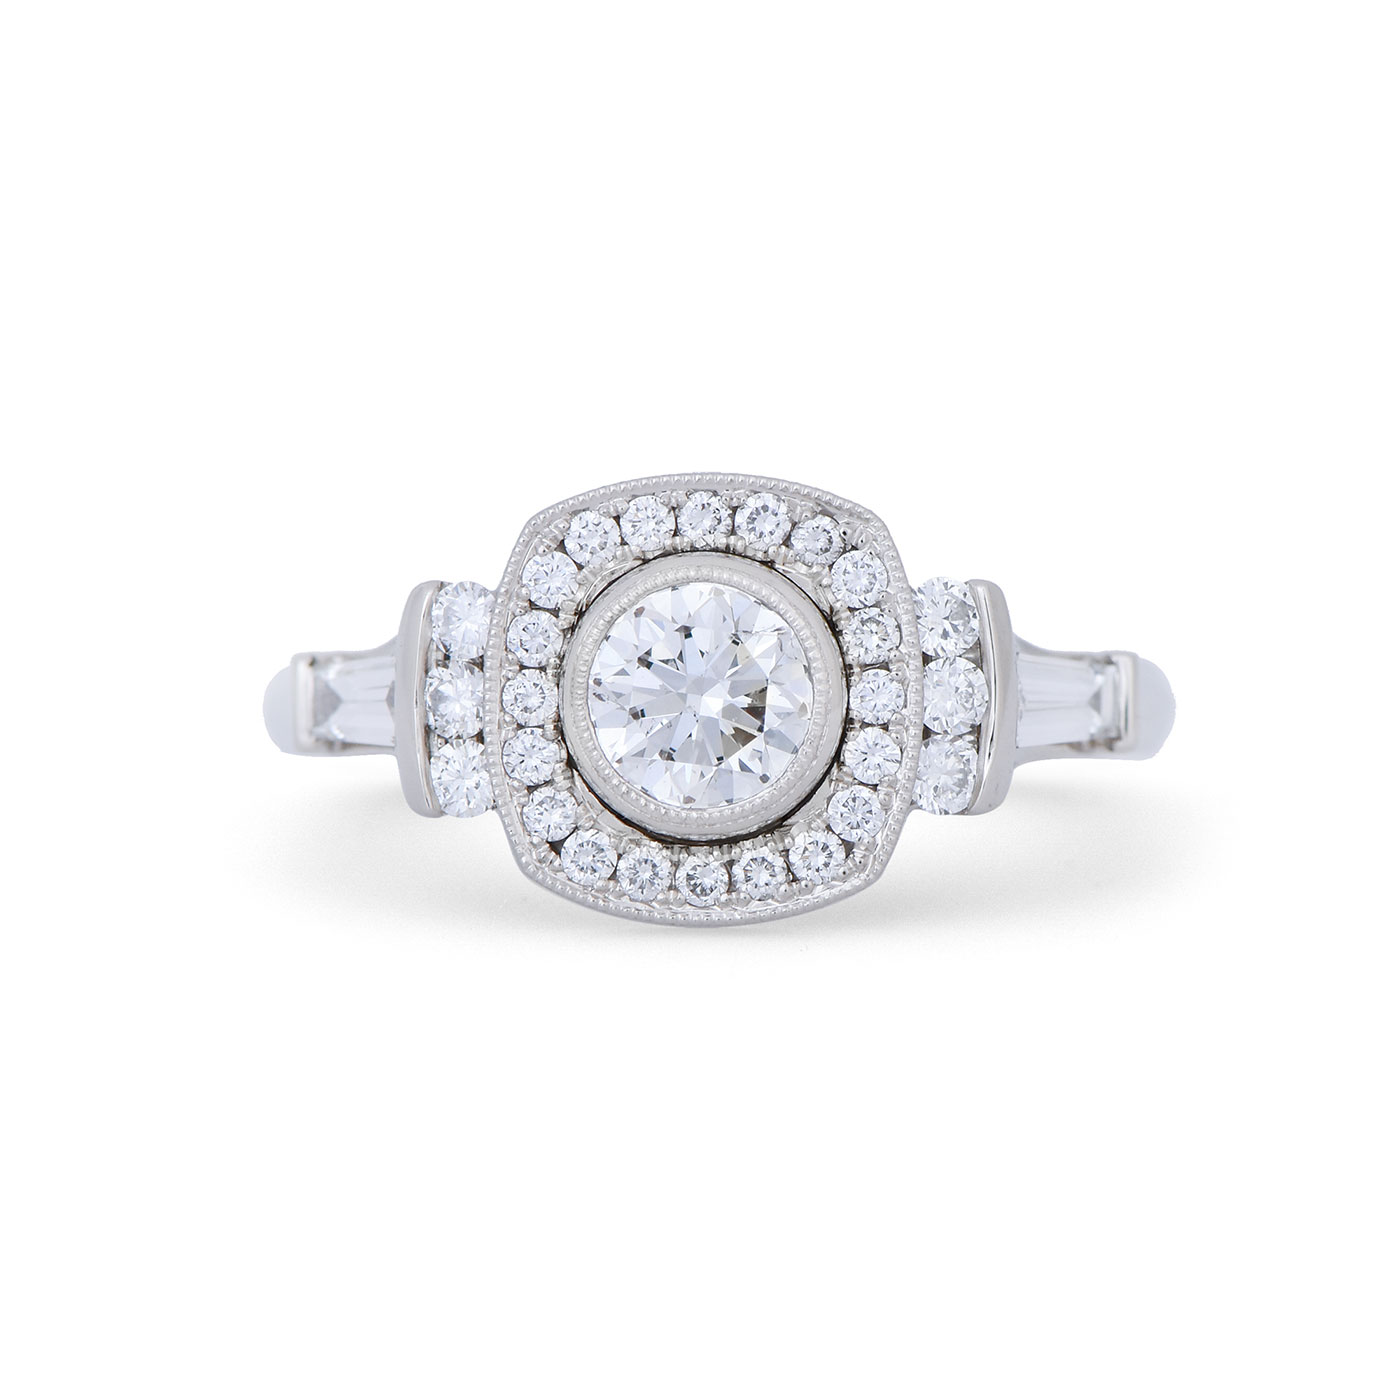 C8247 Art Deco Halo Diamond Engagement Ring